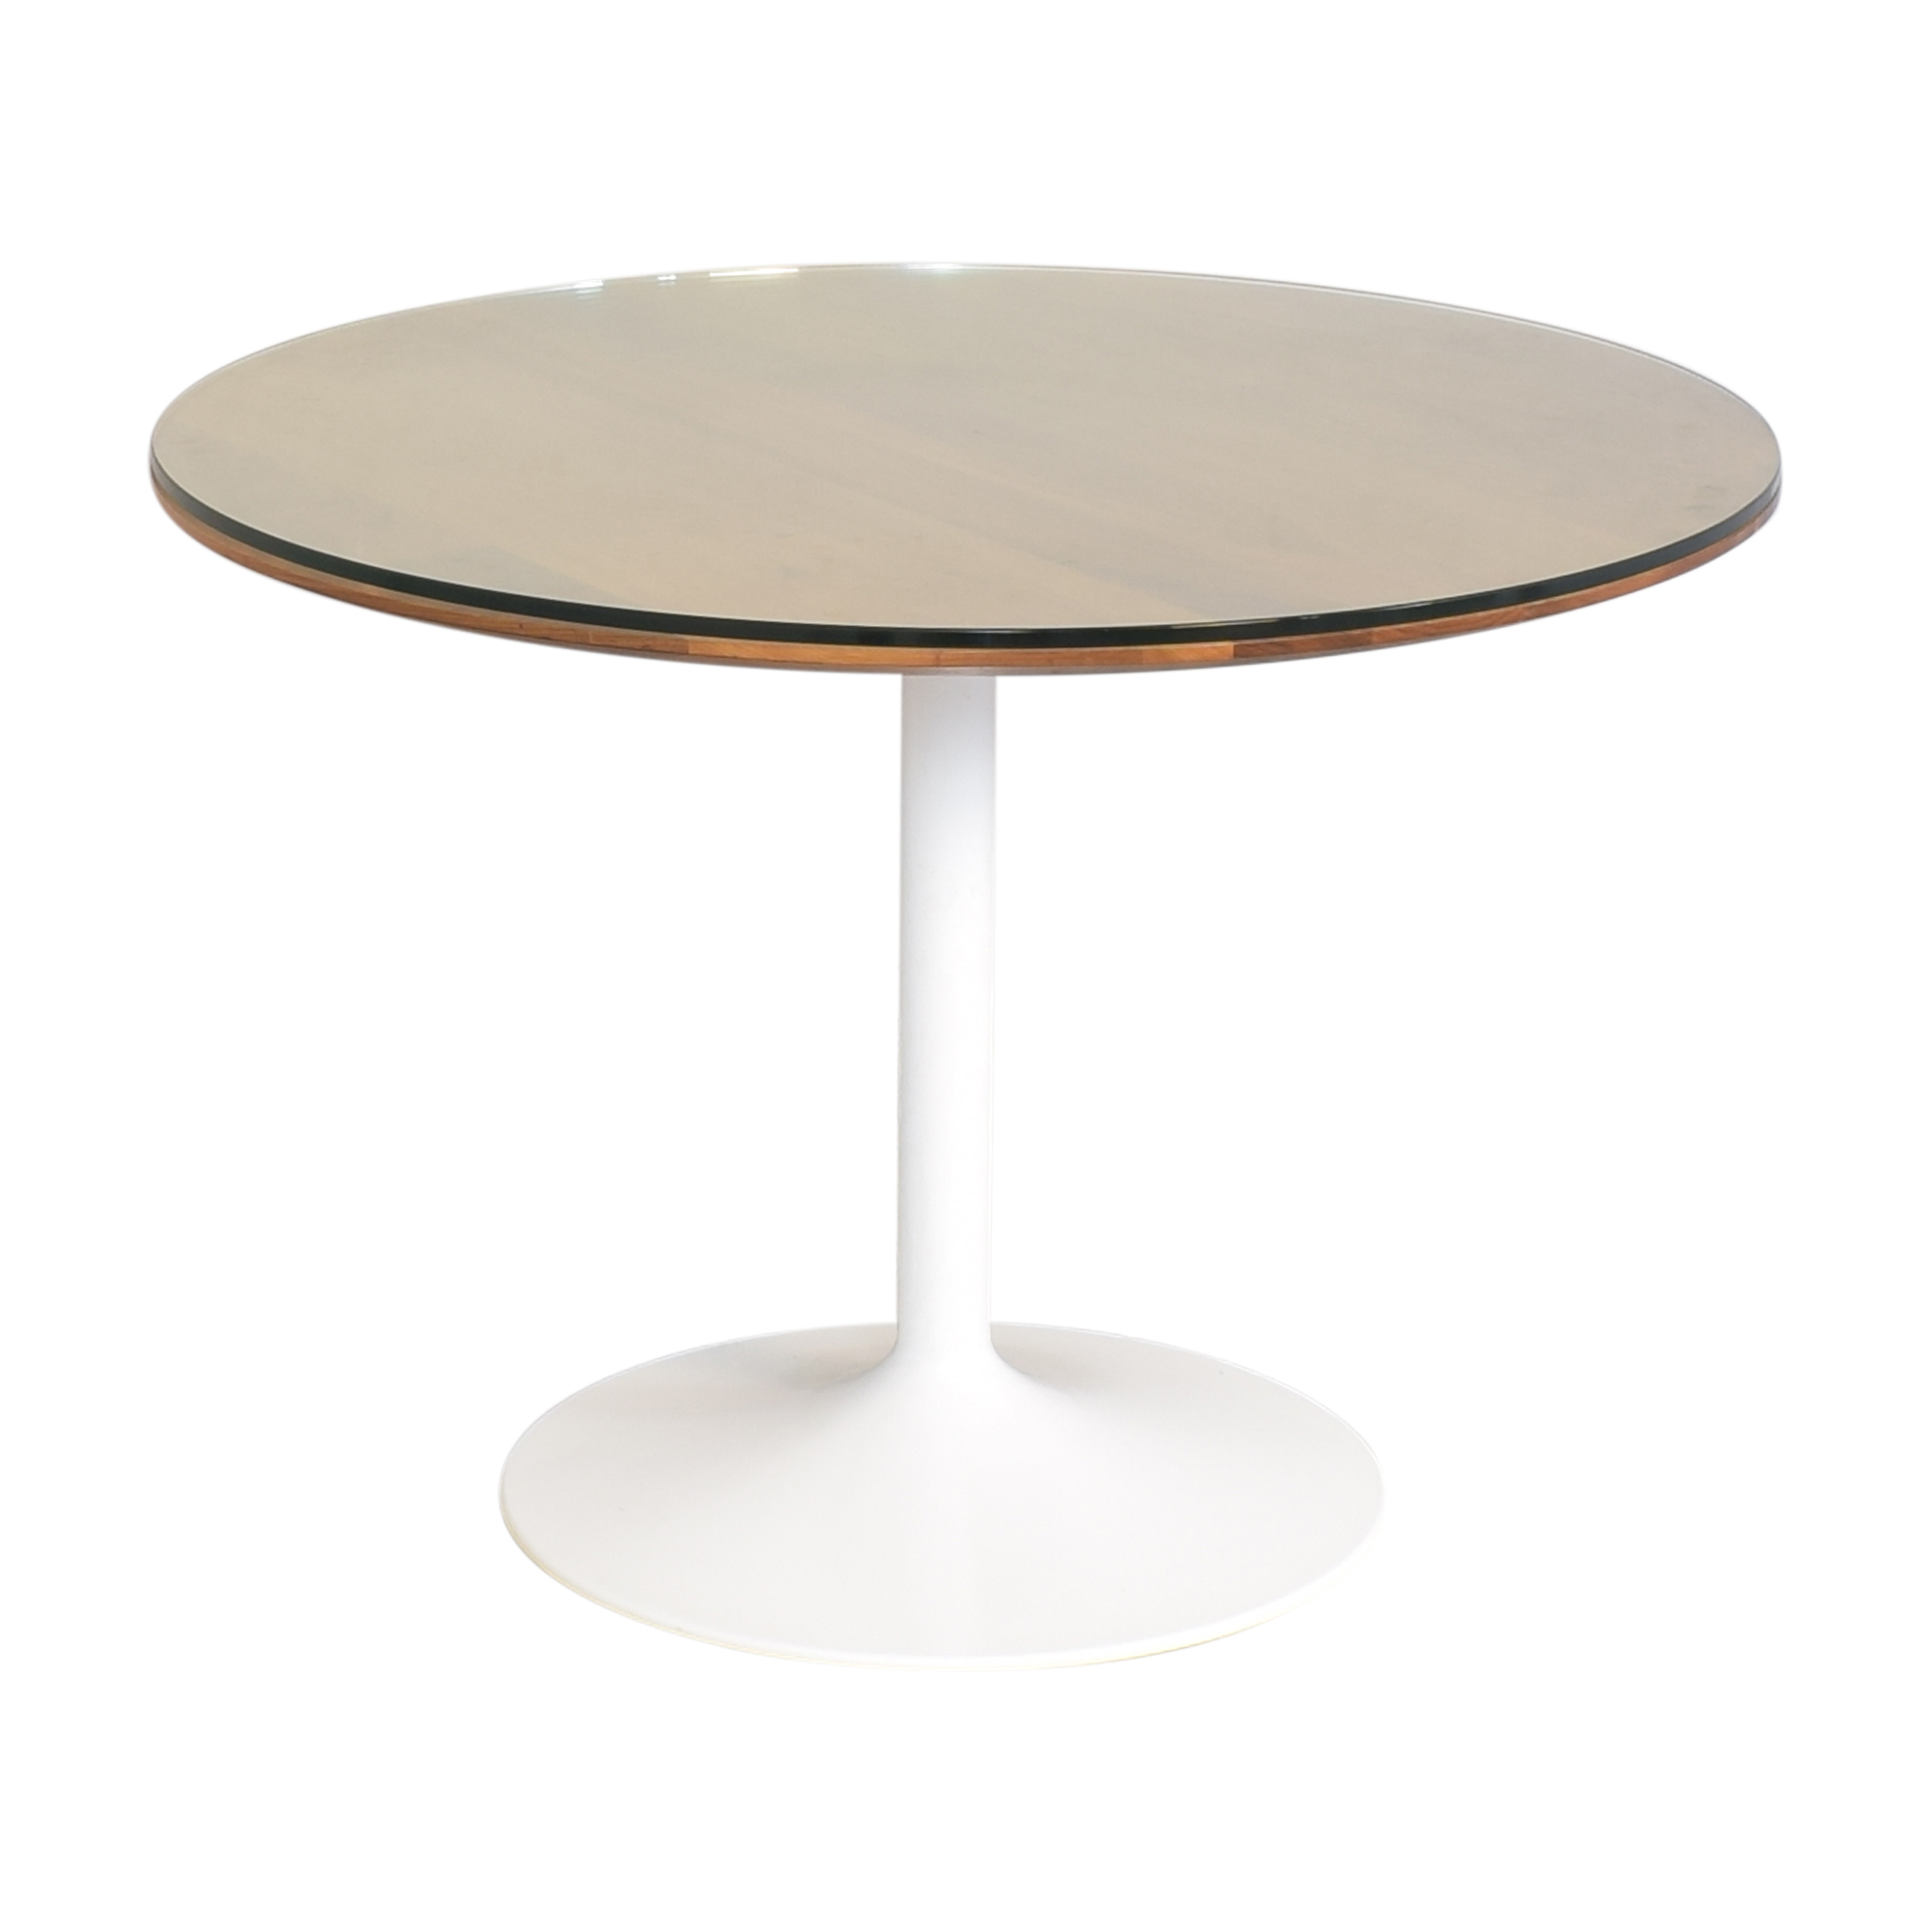 Room & Board Room & Board Aria Round Dining Table Dinner Tables